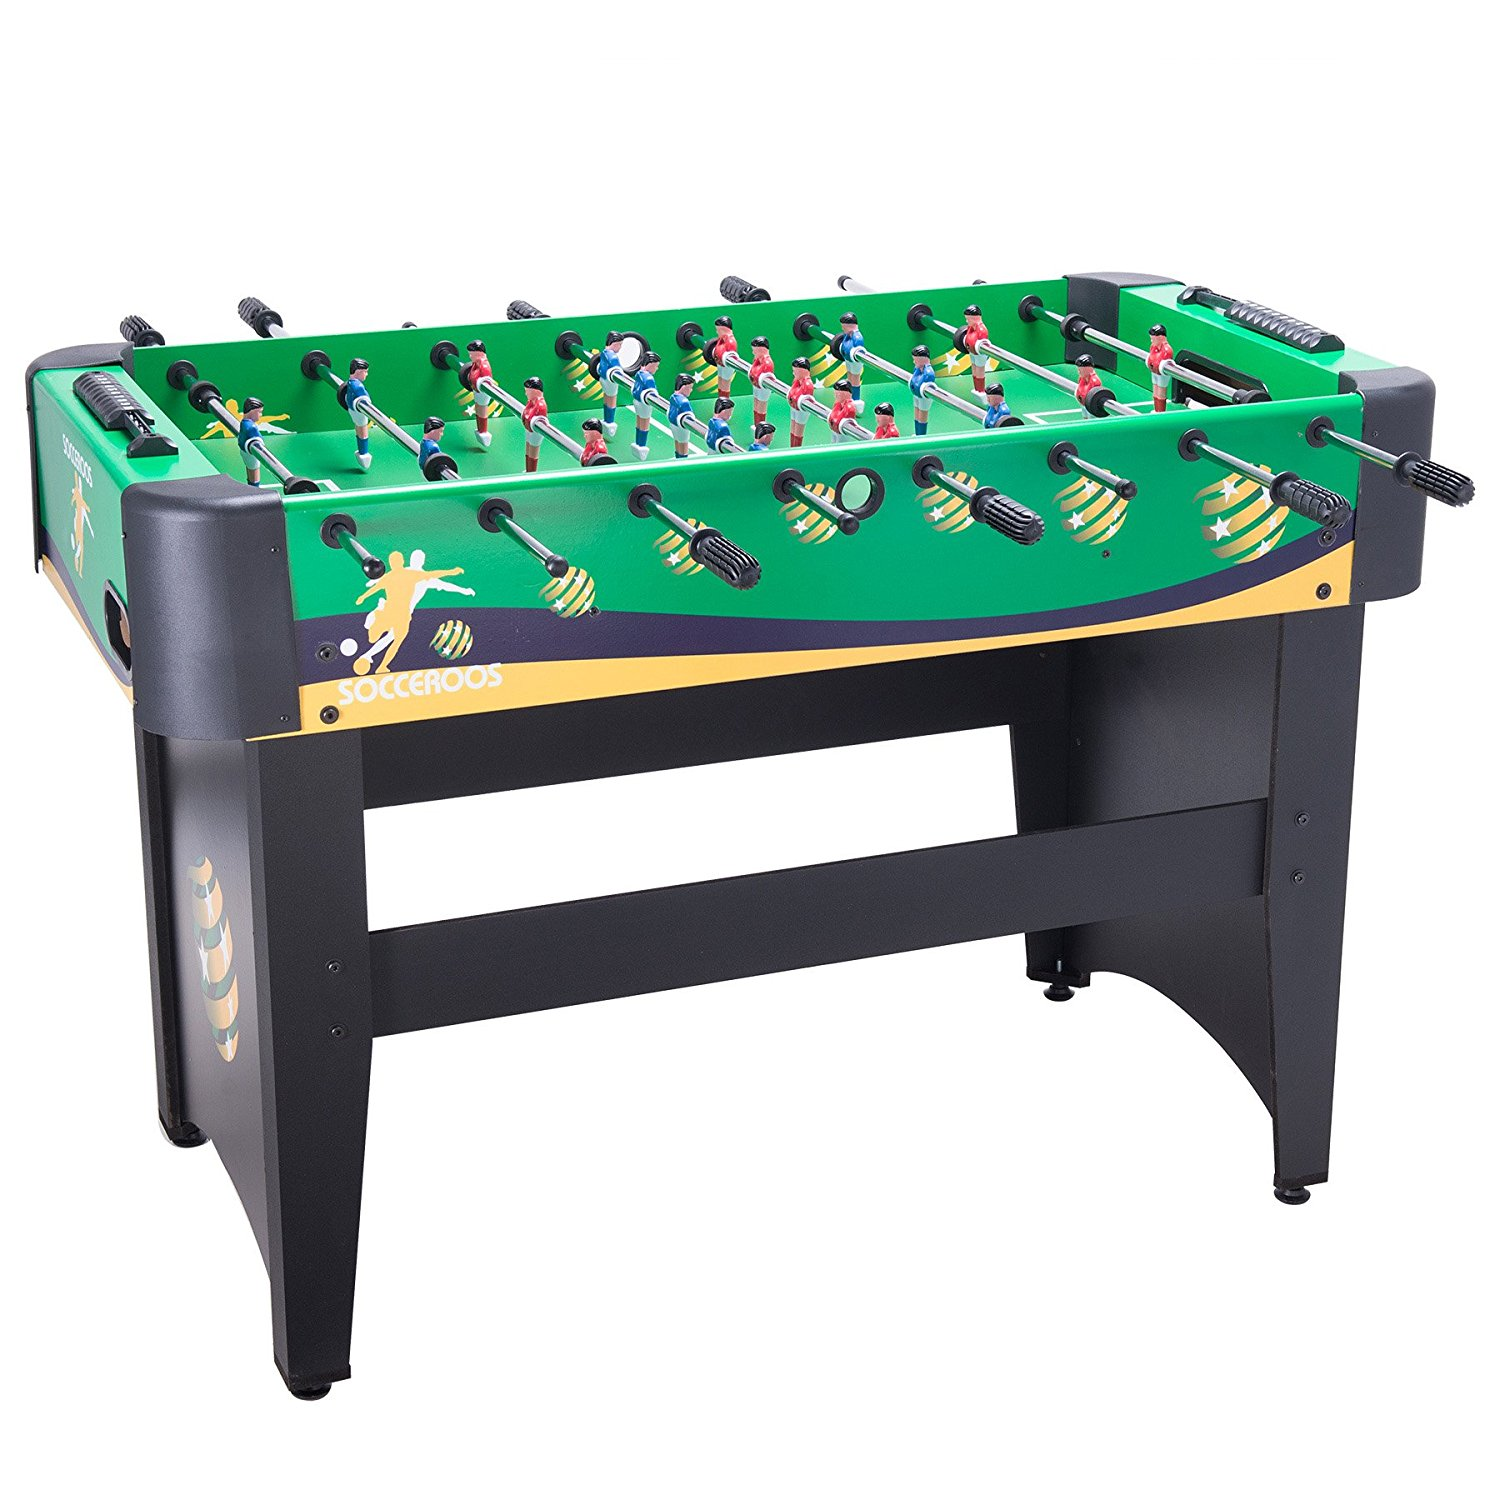 Pinty Foosball Table Soccer 48 MDF Construction For Family Use Game Room